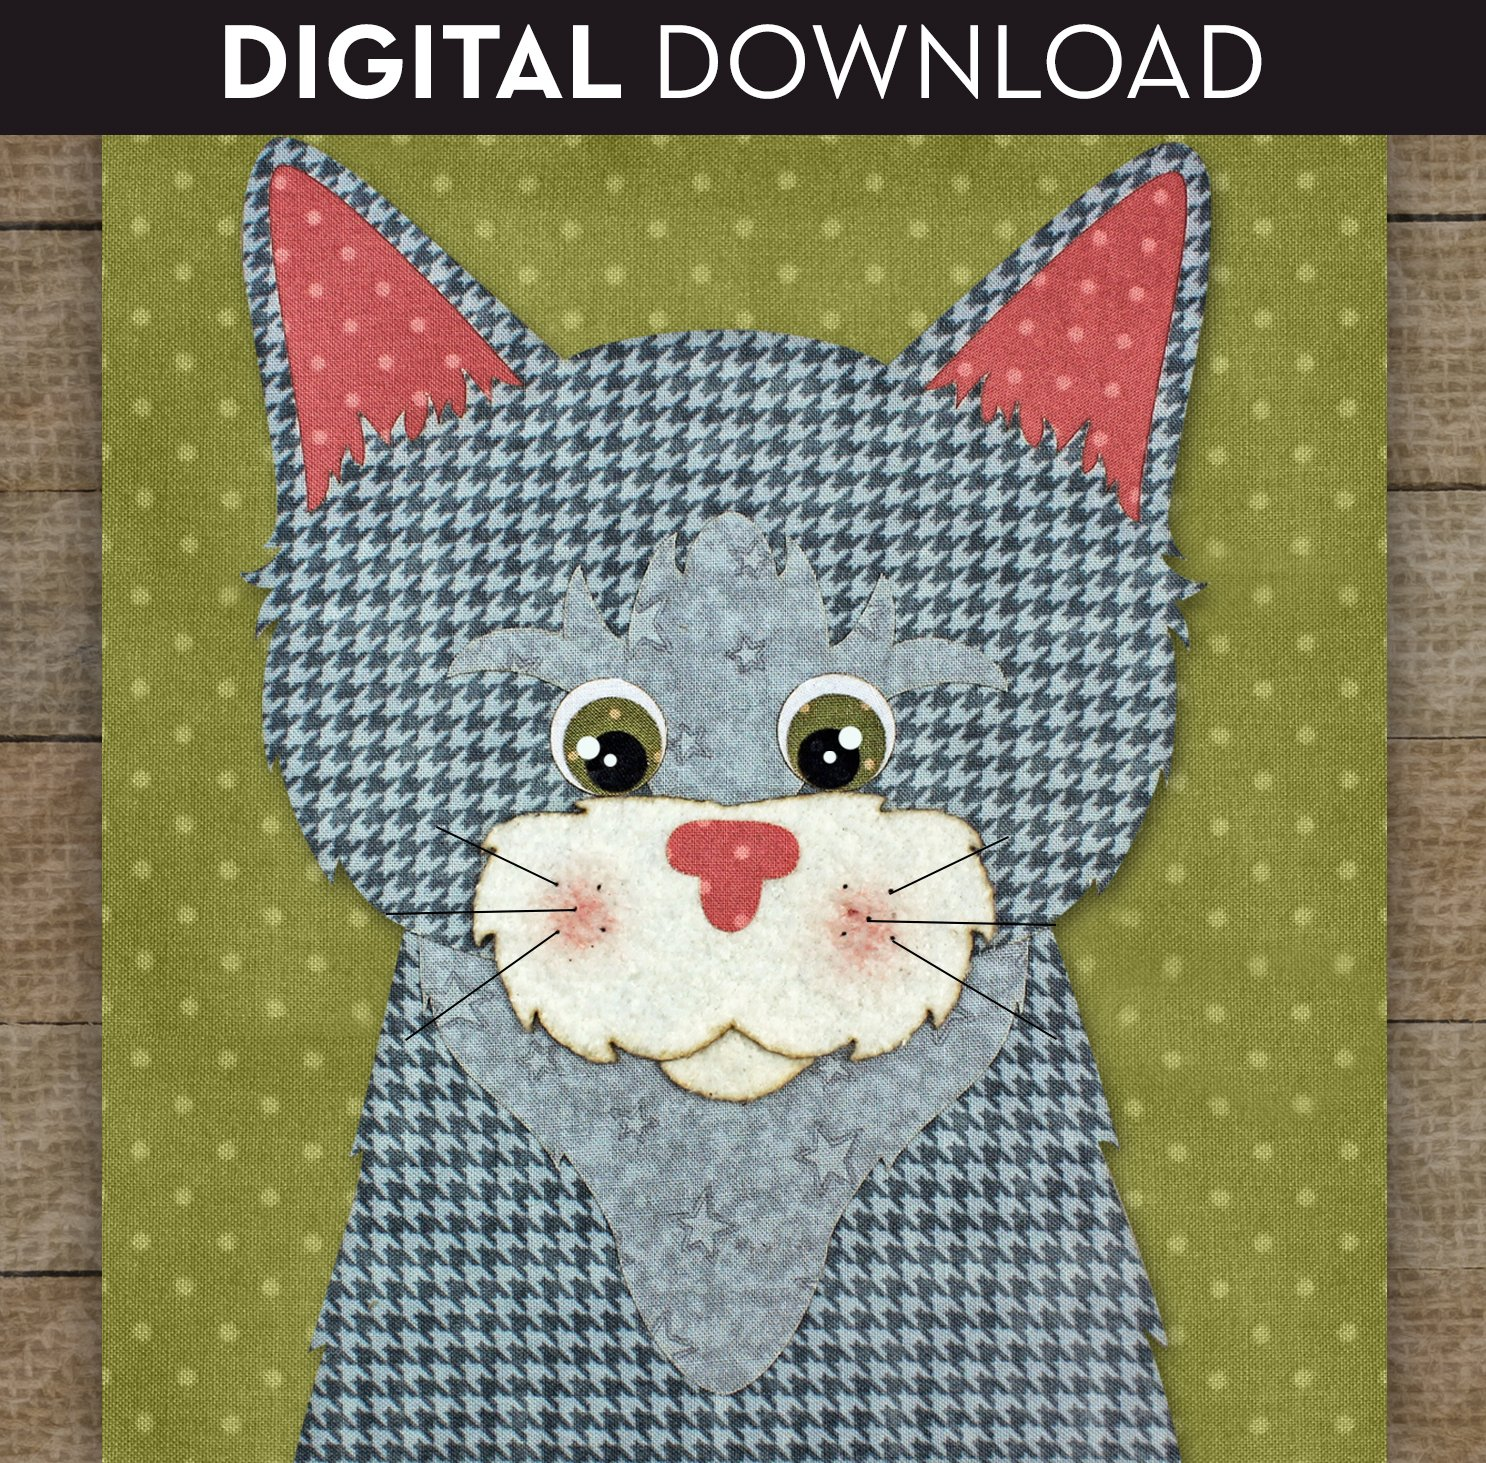 Tabby Cat 2 - Download